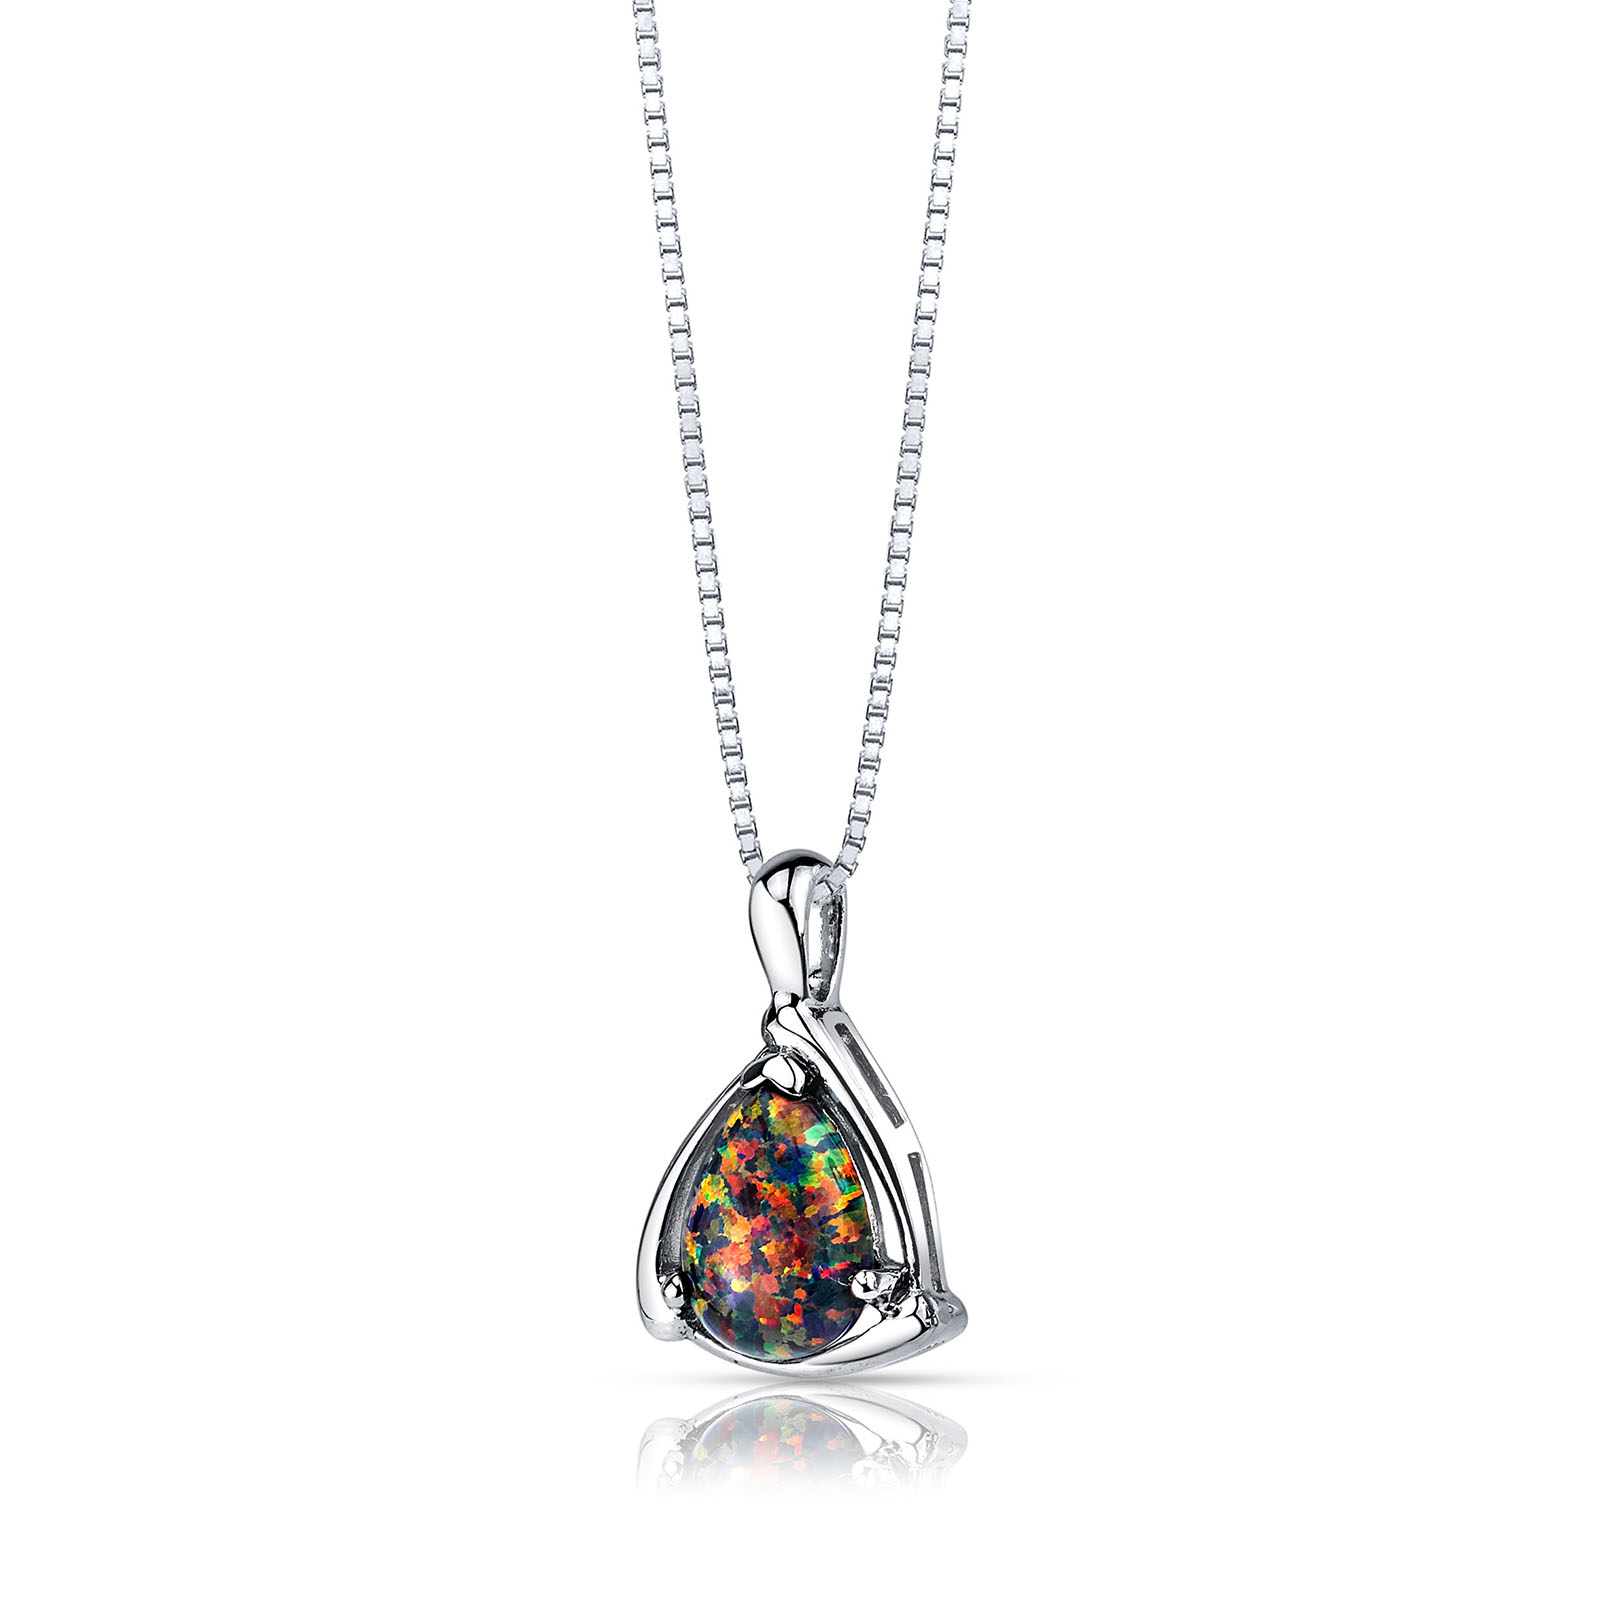 OPAL EQUERRE PENDANT NECKLACE IN STERLING SILVER